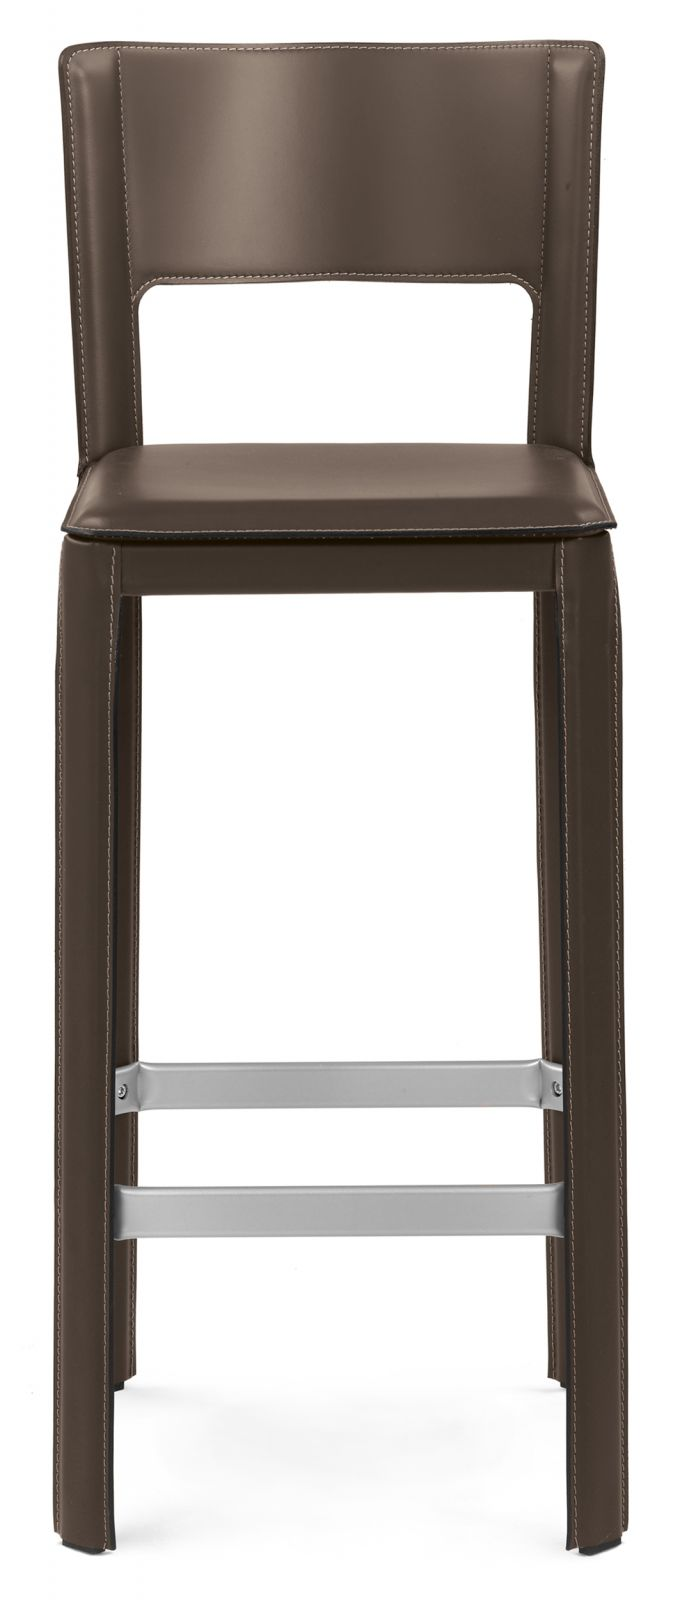 modern-bar-stools-Italian-furniture-large (20).jpg